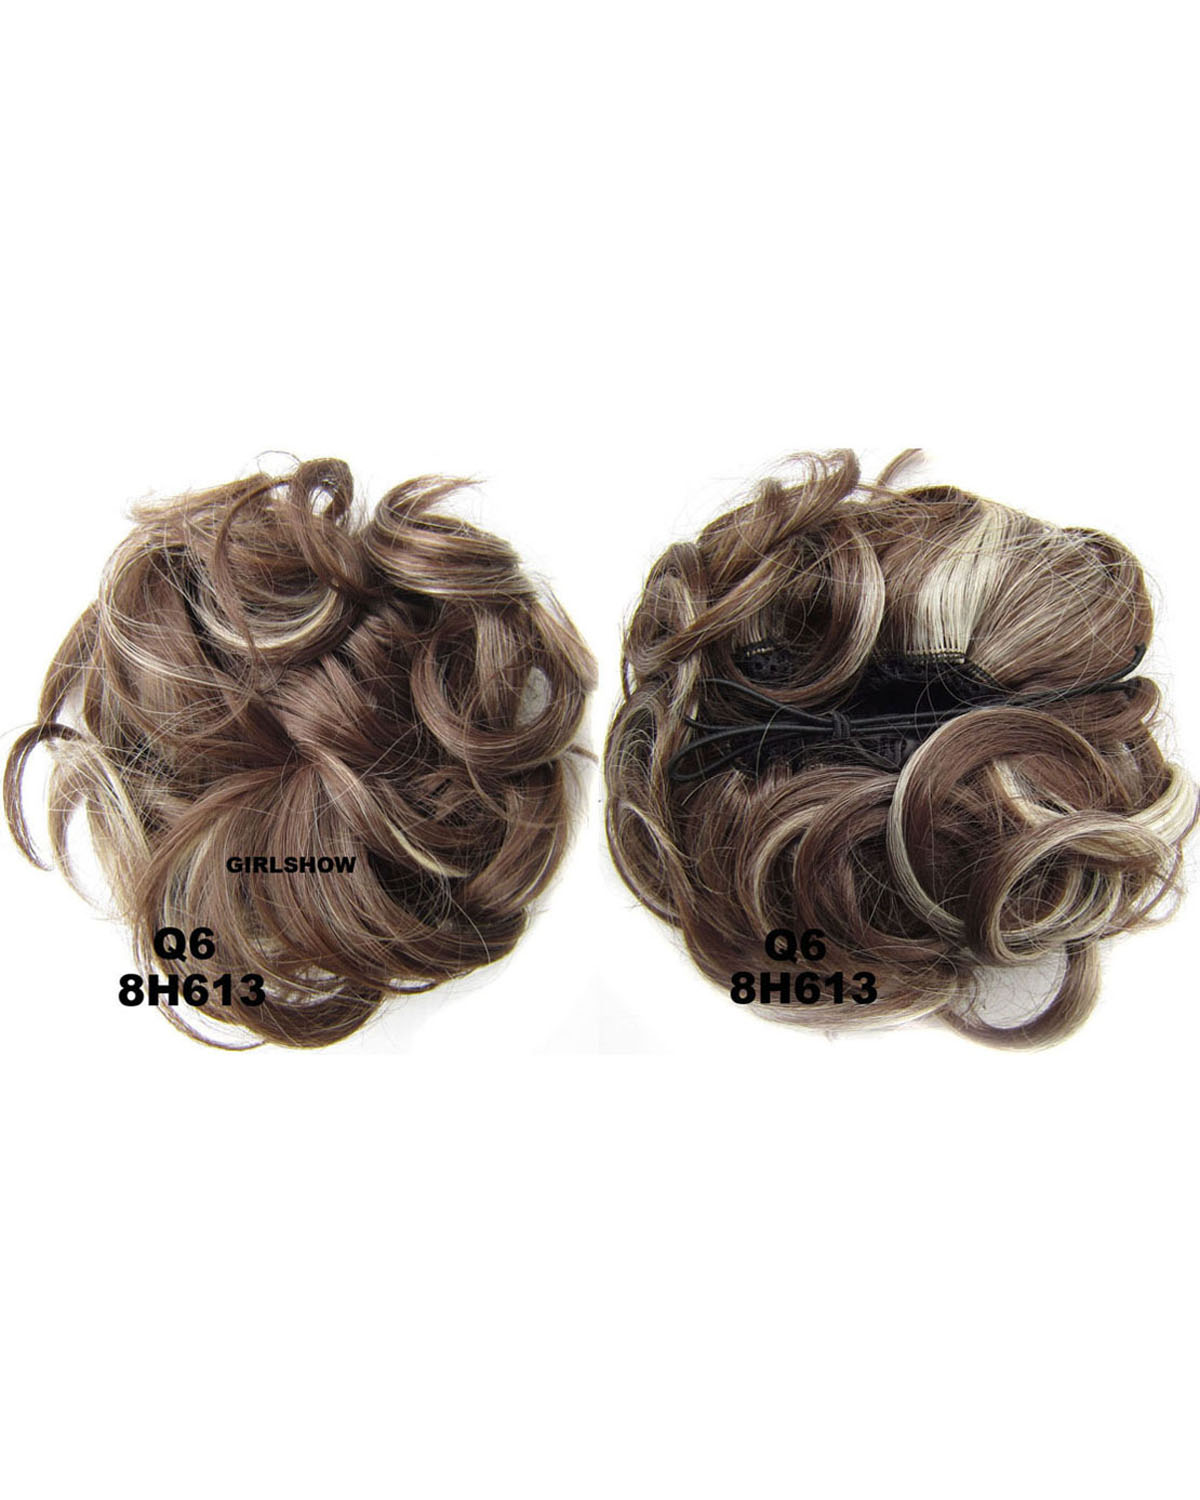 Ladies Popular and High-class Curly and Short Hair Buns Drawstring Synthetic Hair Extension Bride Scrunchies8H613